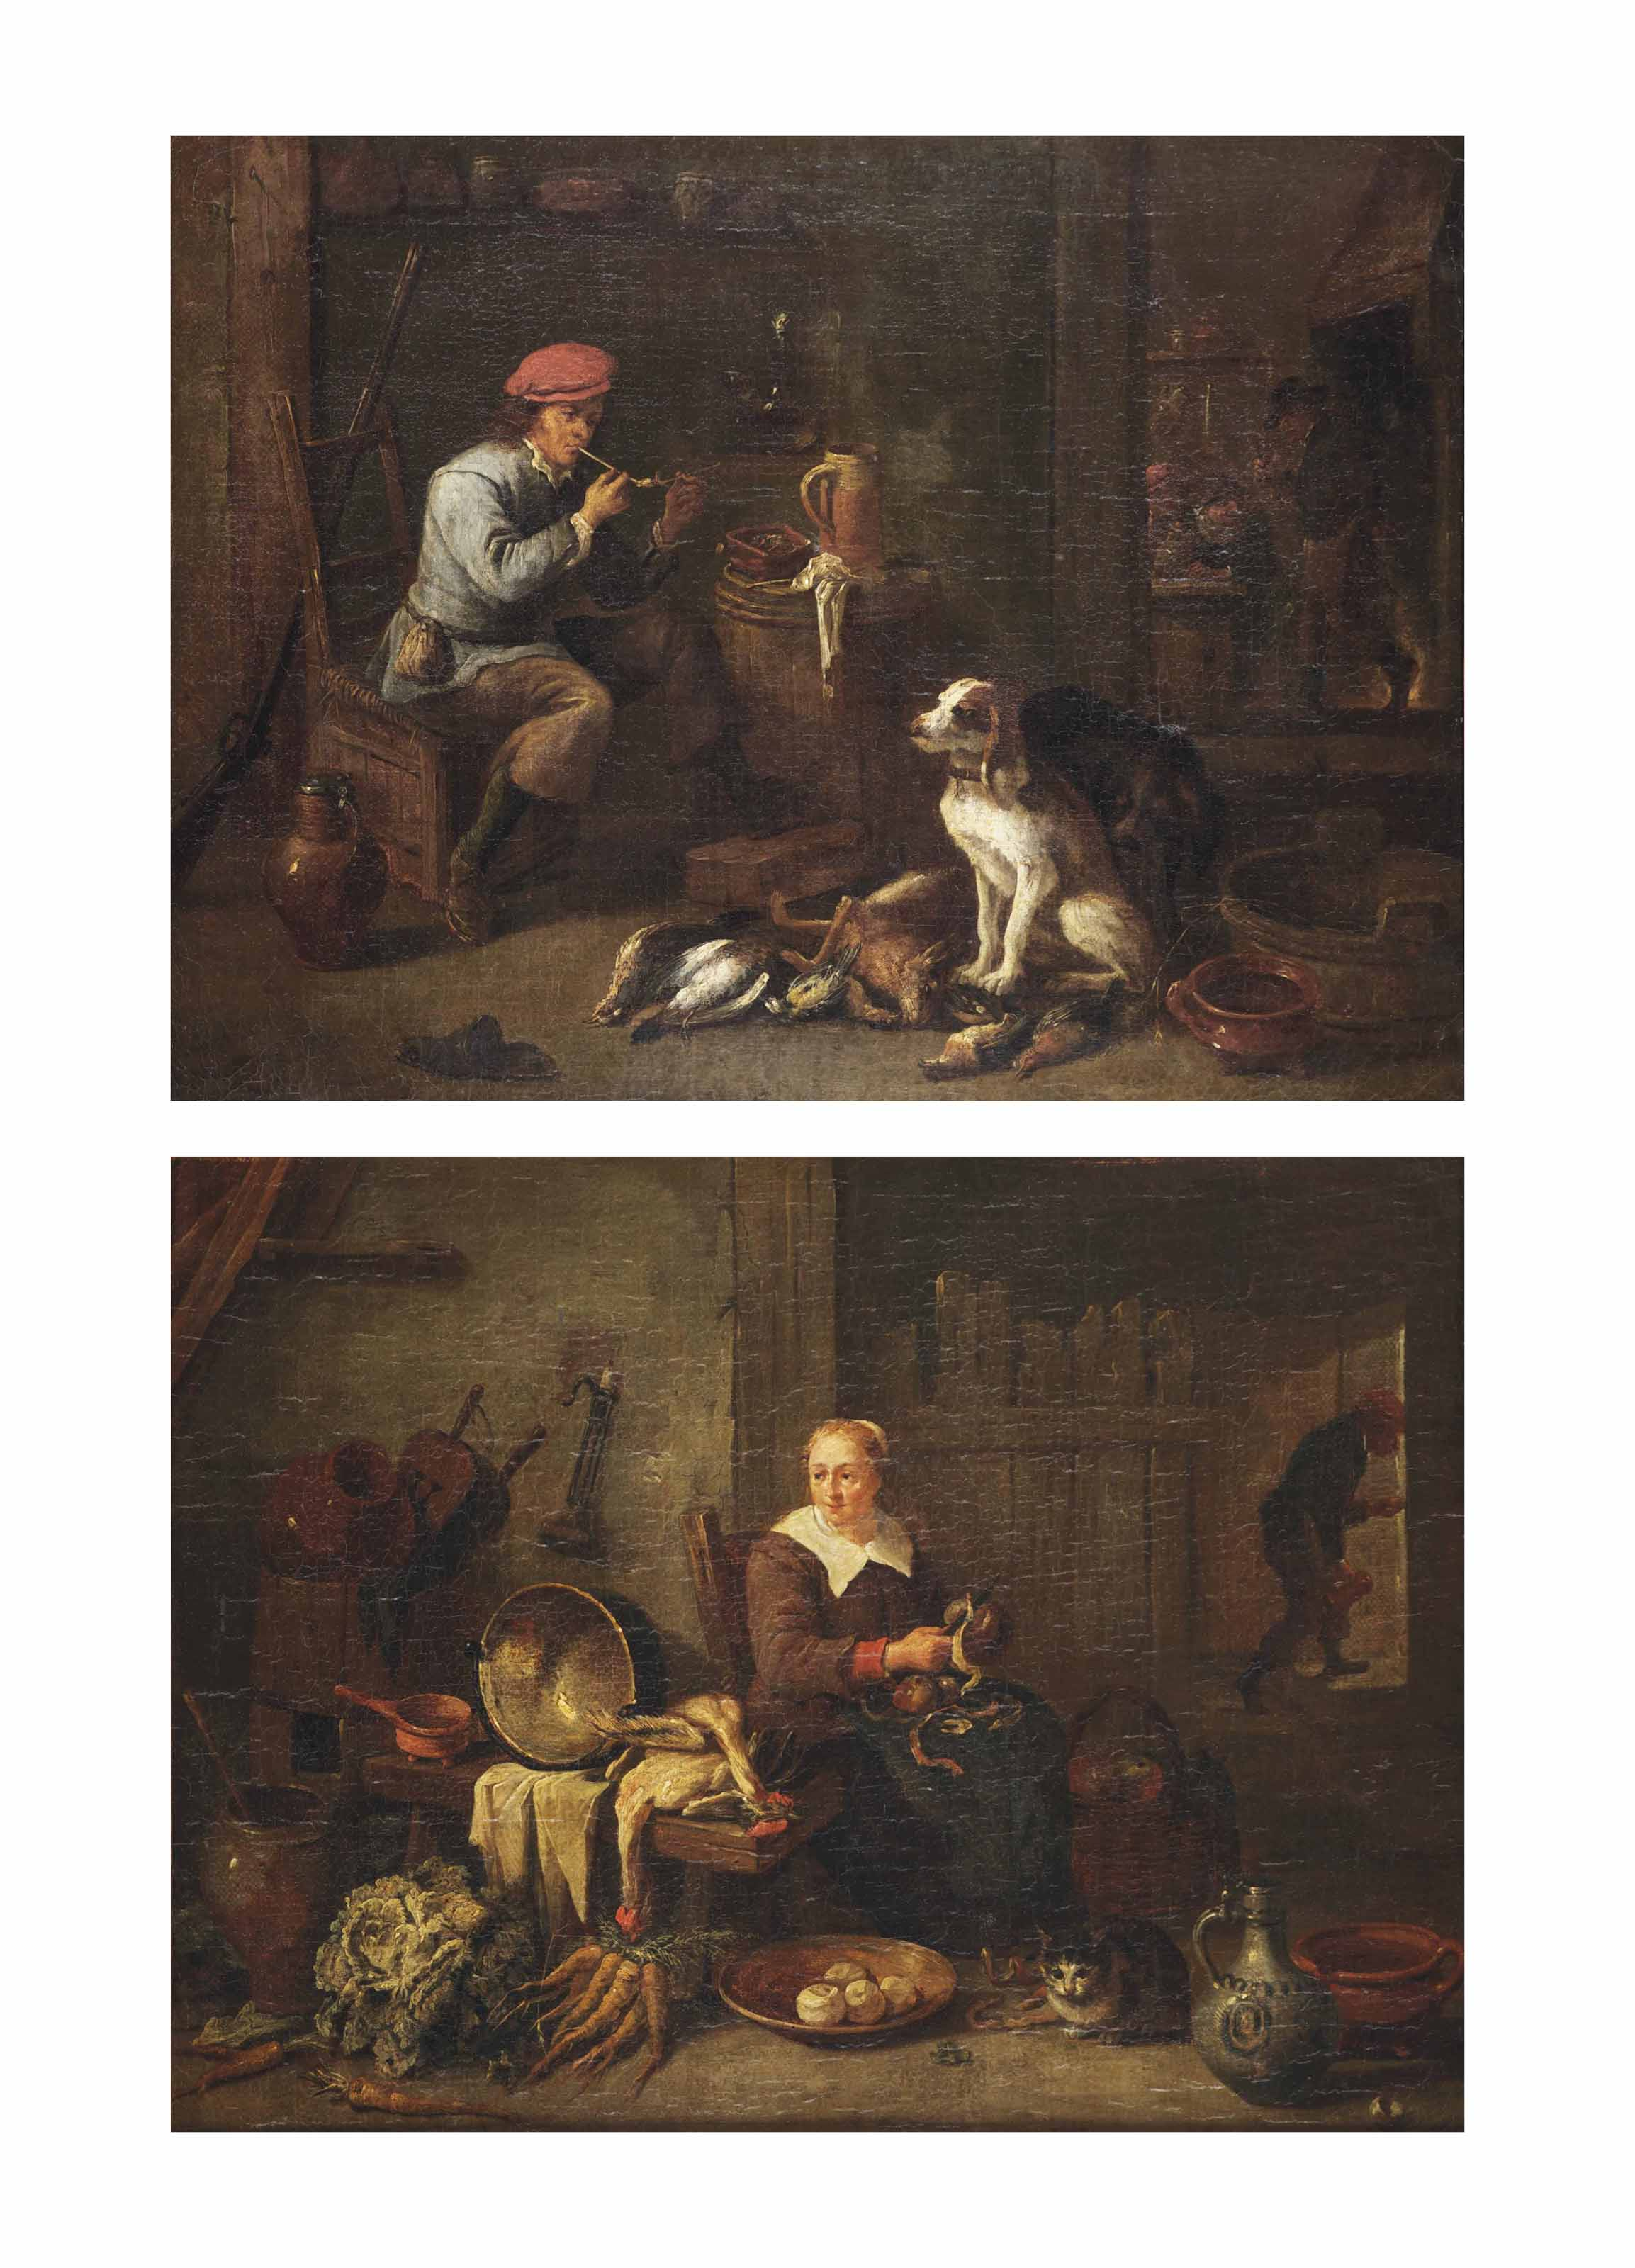 An interior with a seated hunter smoking a pipe beside his dogs and their hunt, a merry company smoking and drinking in the background; and An interior with a seated kitchen maid peeling apples with a cat, vegetables, hens and kitchen supplies, a man with a beer jug in the background